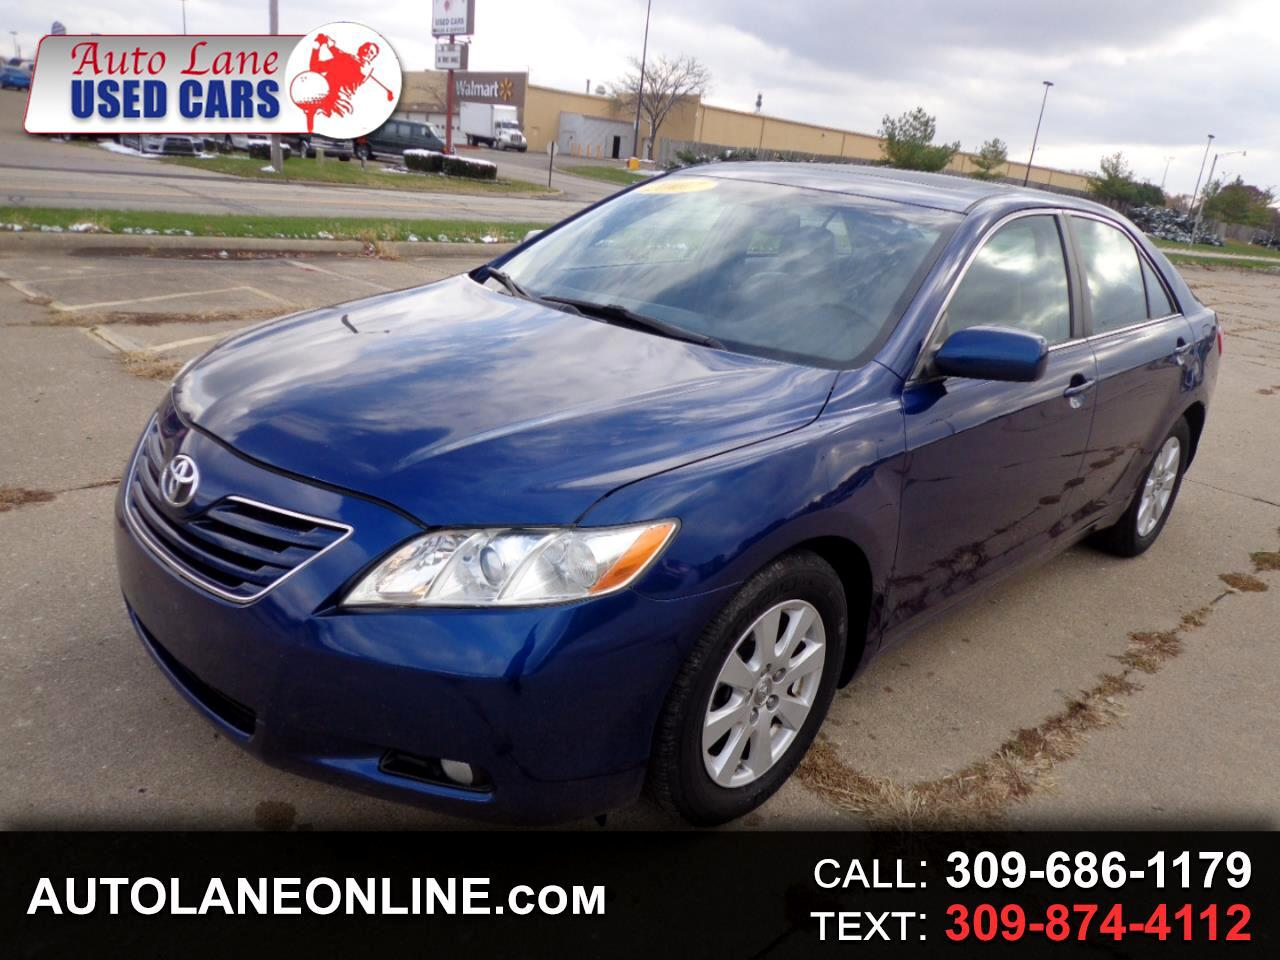 2007 Toyota Camry 4dr Sdn I4 Auto XLE (Natl)